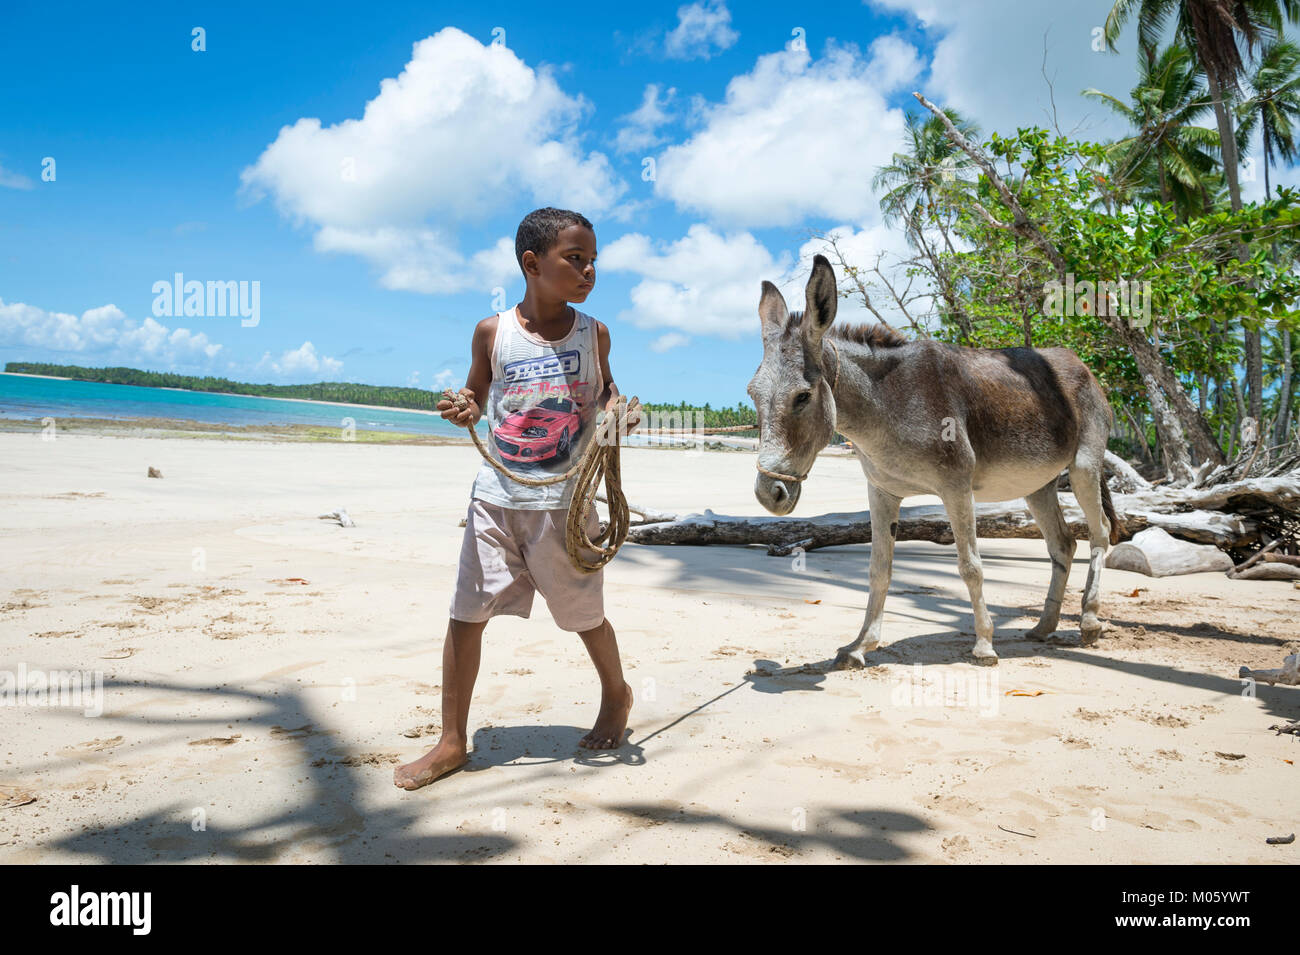 BAHIA, BRAZIL - MARCH 11, 2017: A young Brazilian leads a mule on the palm fringed shore of a beach in the remote - Stock Image